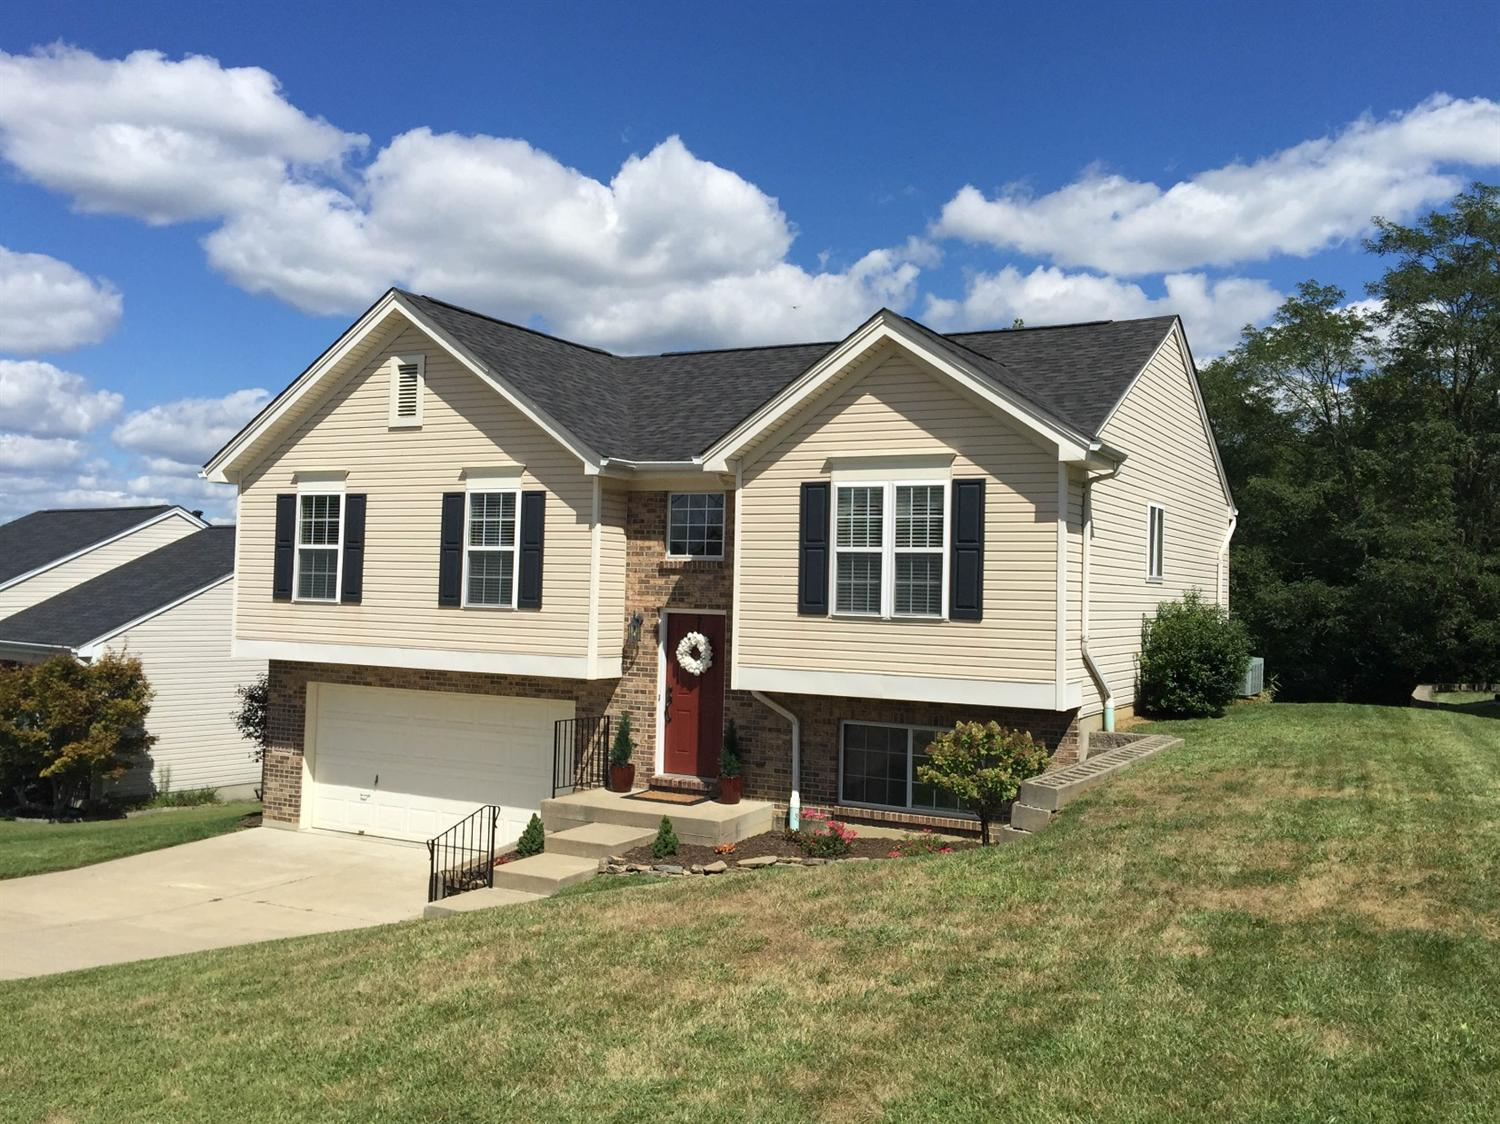 Photo 1 for 2172 Gribble Dr Covington, KY 41017